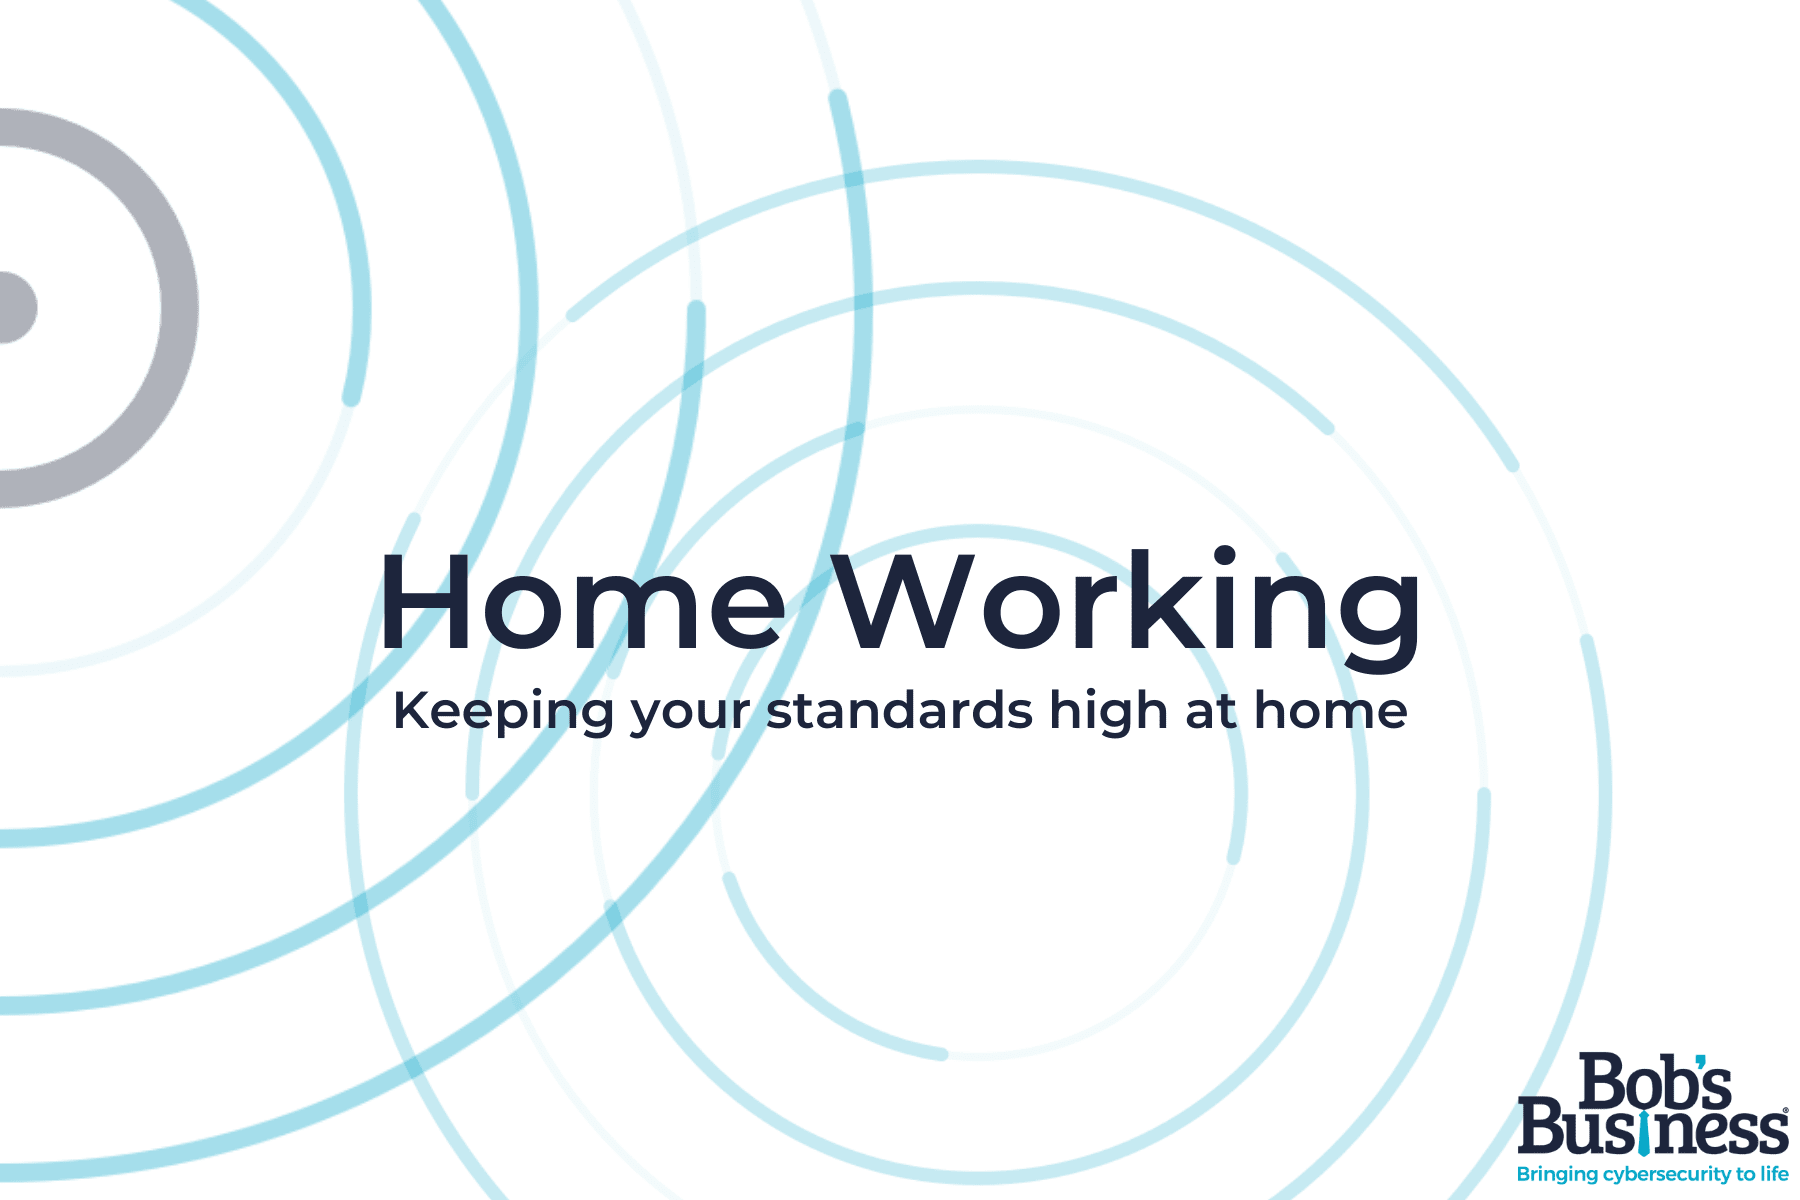 Home Working course